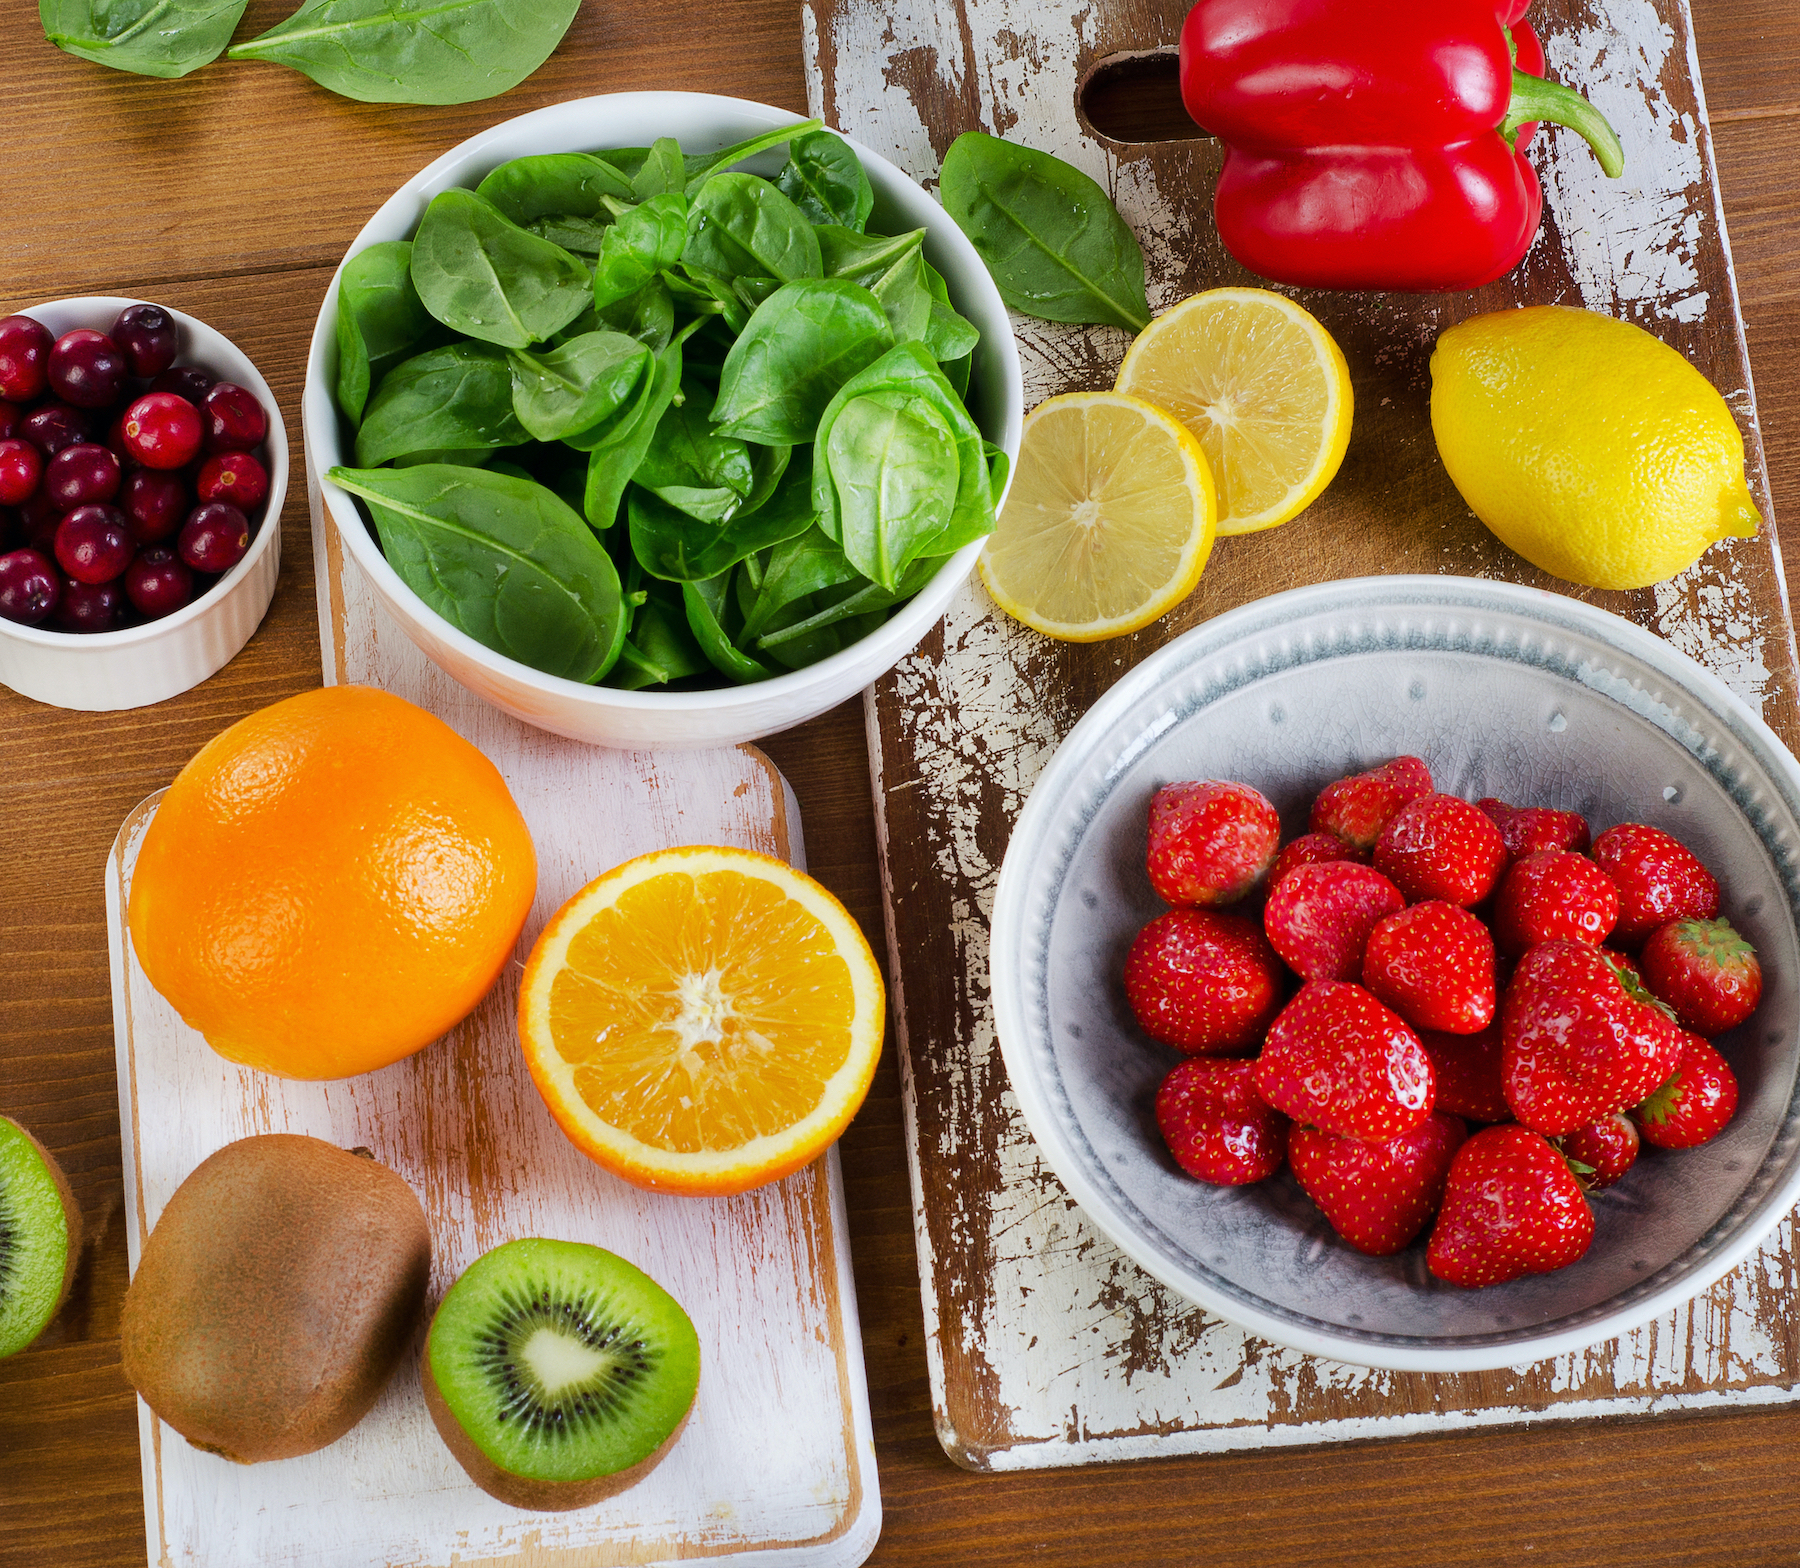 Foods Highest in Vitamin C. View from above